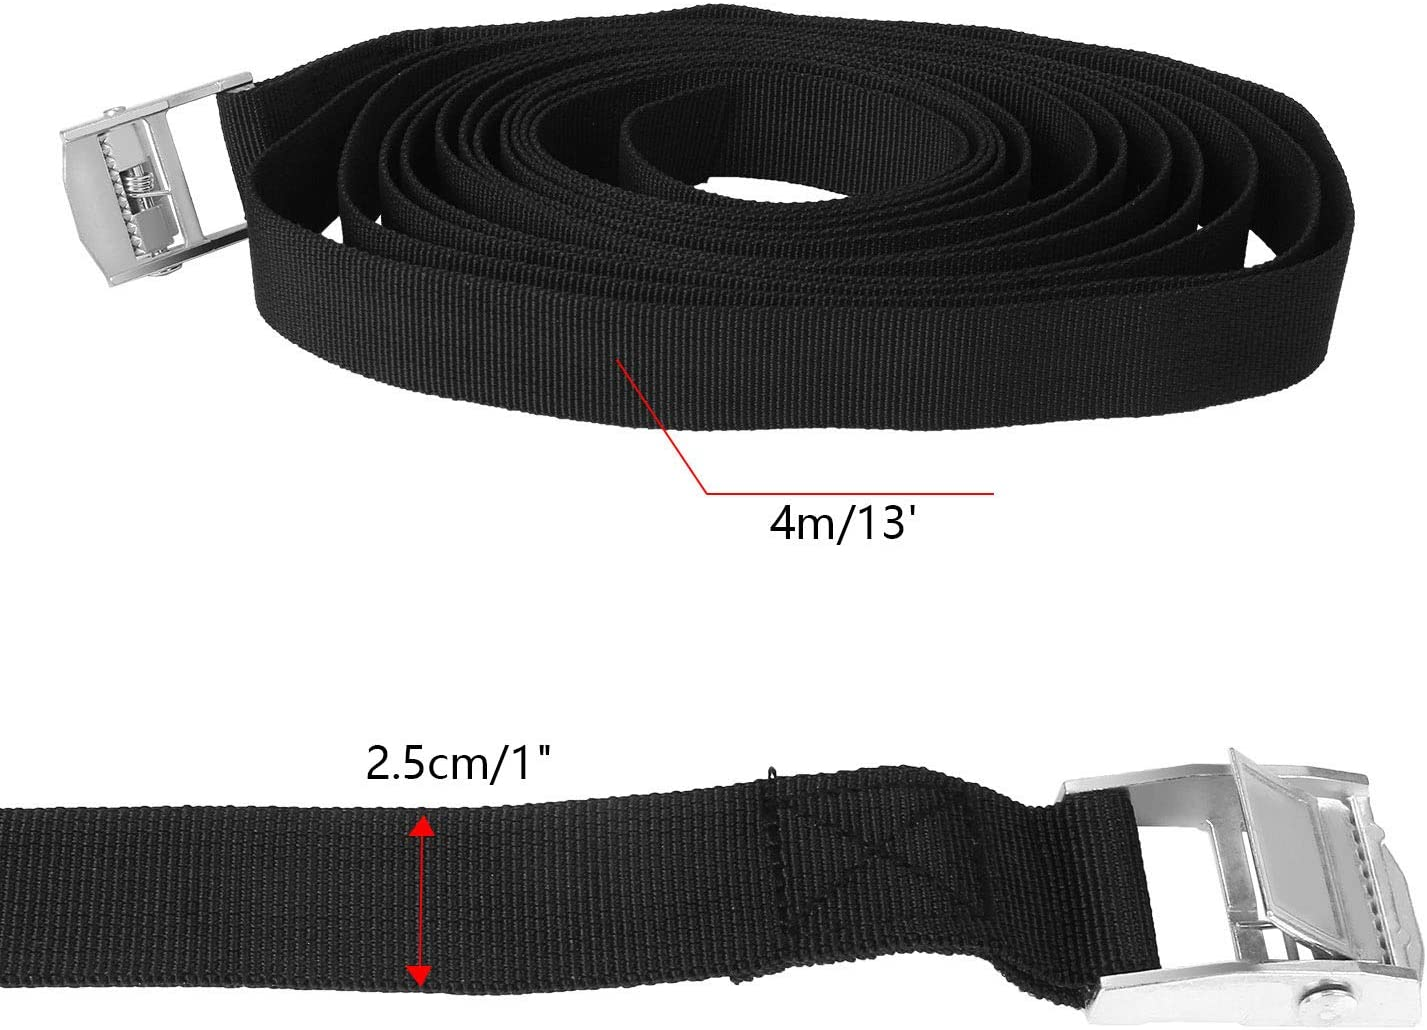 Black 4 Pack 1 x13 Lashing Straps Tie Down Straps for roof Racks Tie Down Mounted Cargo with Cam Lock Buckle